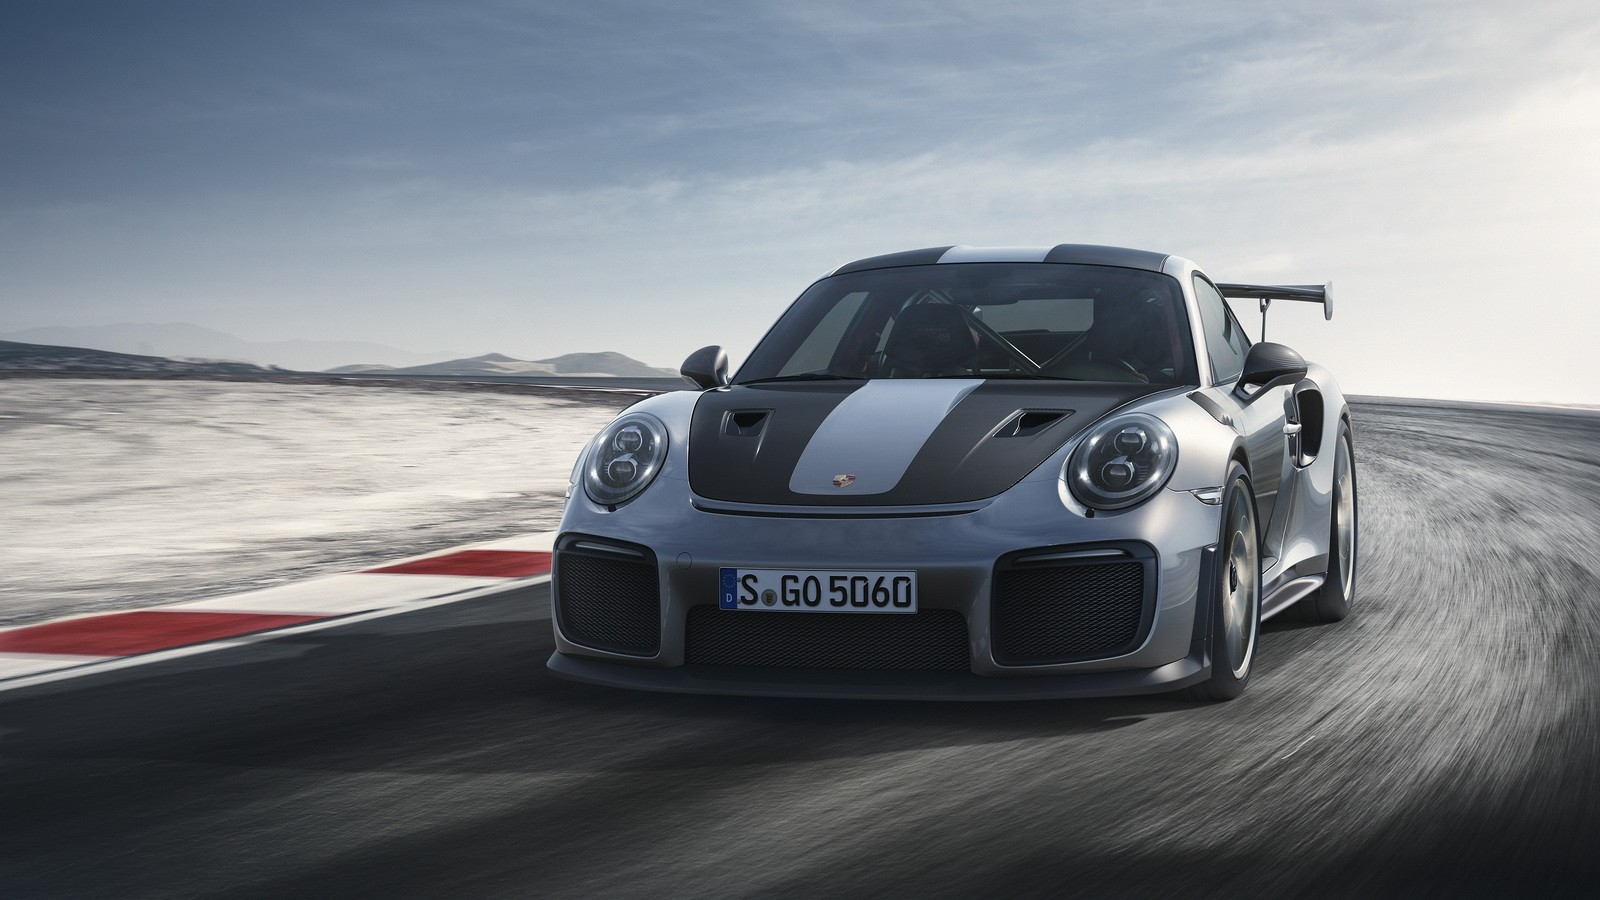 2018 porsche 911 gt2 rs nurburgring record is this it autoevolution. Black Bedroom Furniture Sets. Home Design Ideas